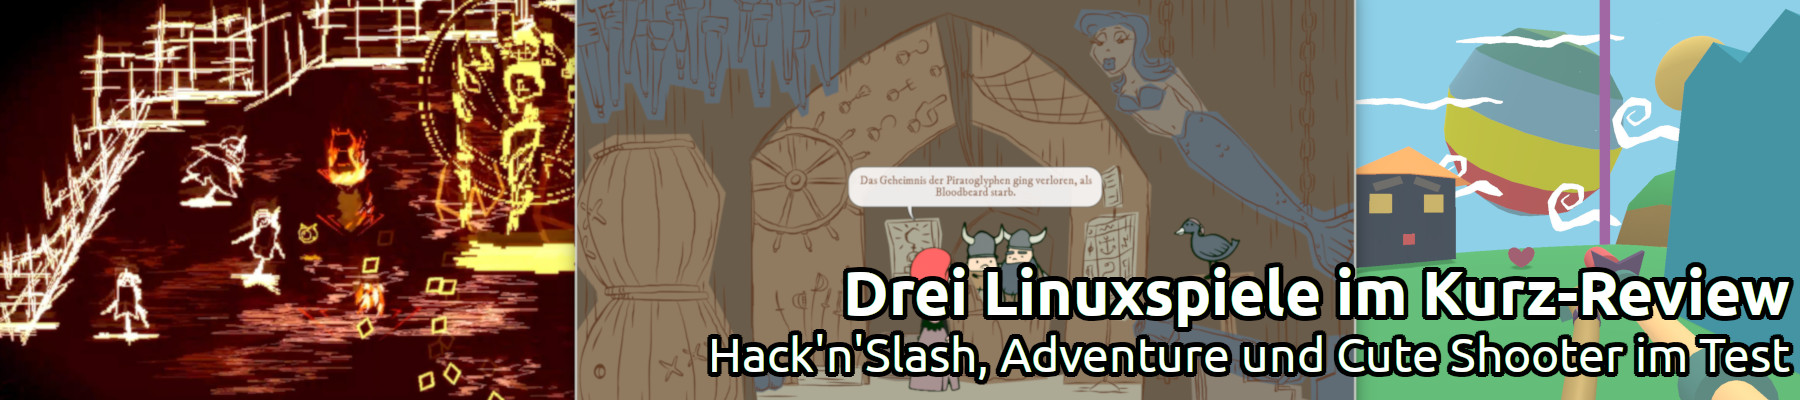 https://www.holarse-linuxgaming.de/sites/default/files/2020-05-24-1/review-mix-banner_2.jpg